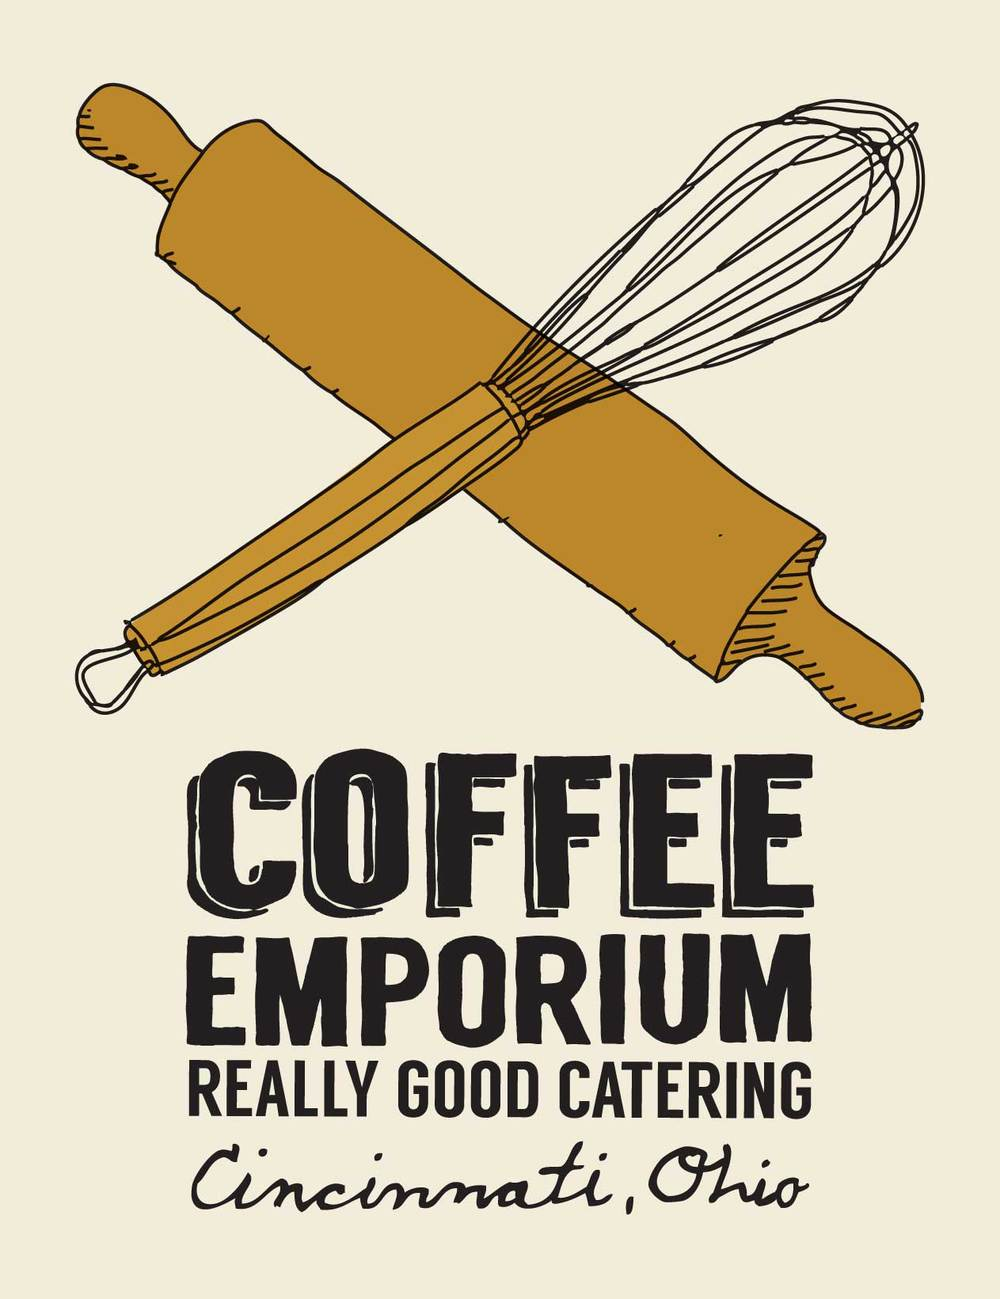 coffee-emporium-catering.jpg